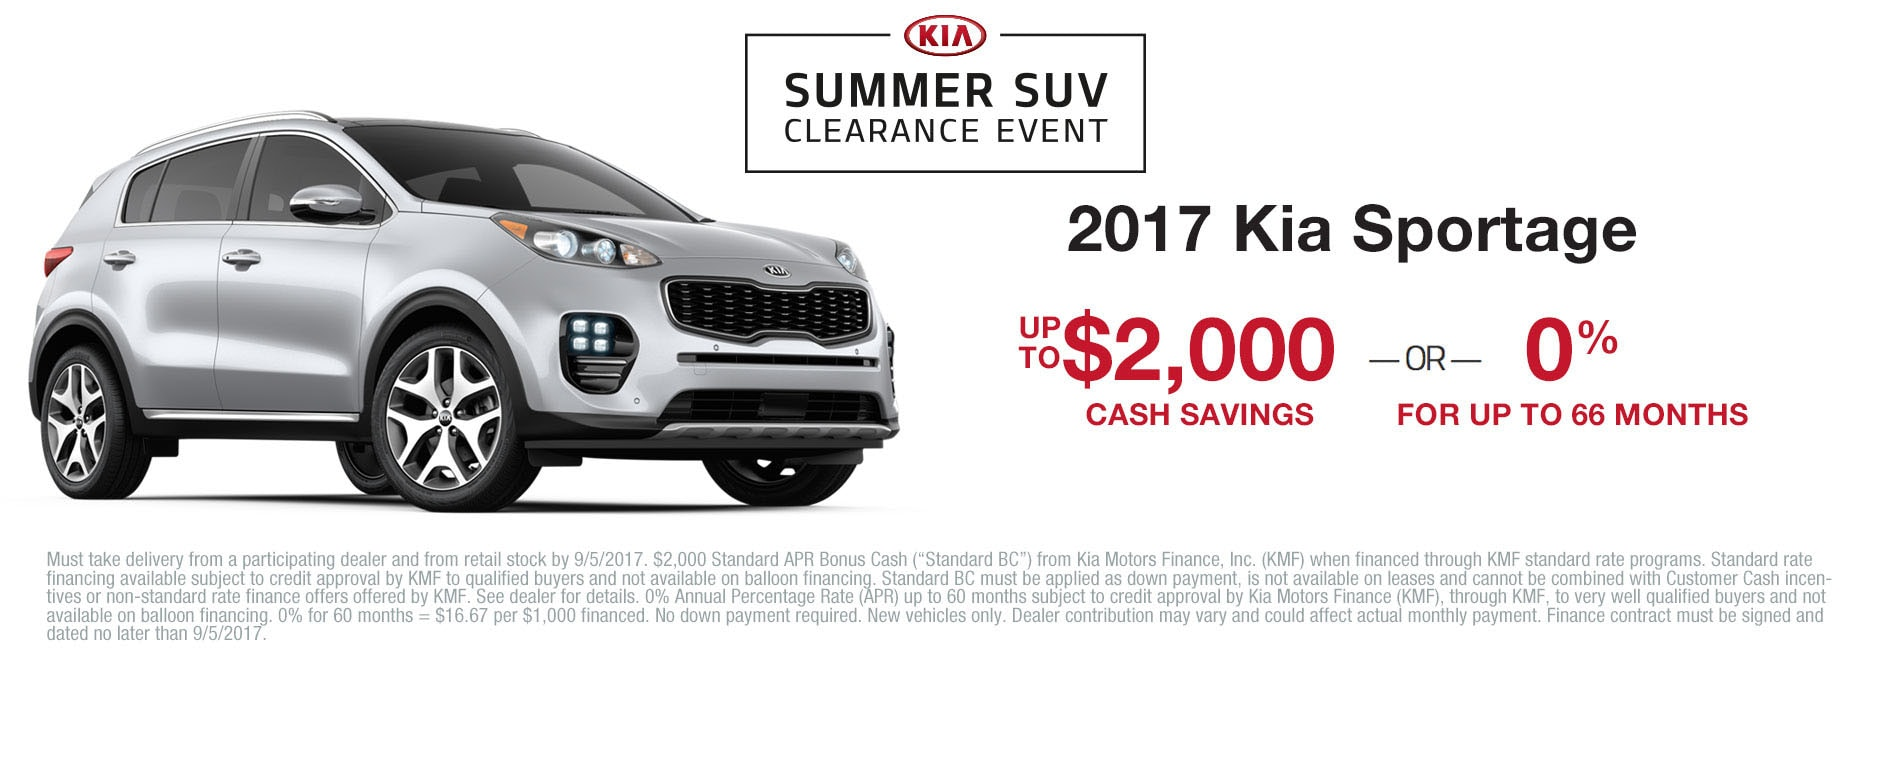 Get $2,000 cash savings or 0% APR financing up to 60 months when you purchase a 2017 Kia Sportage.